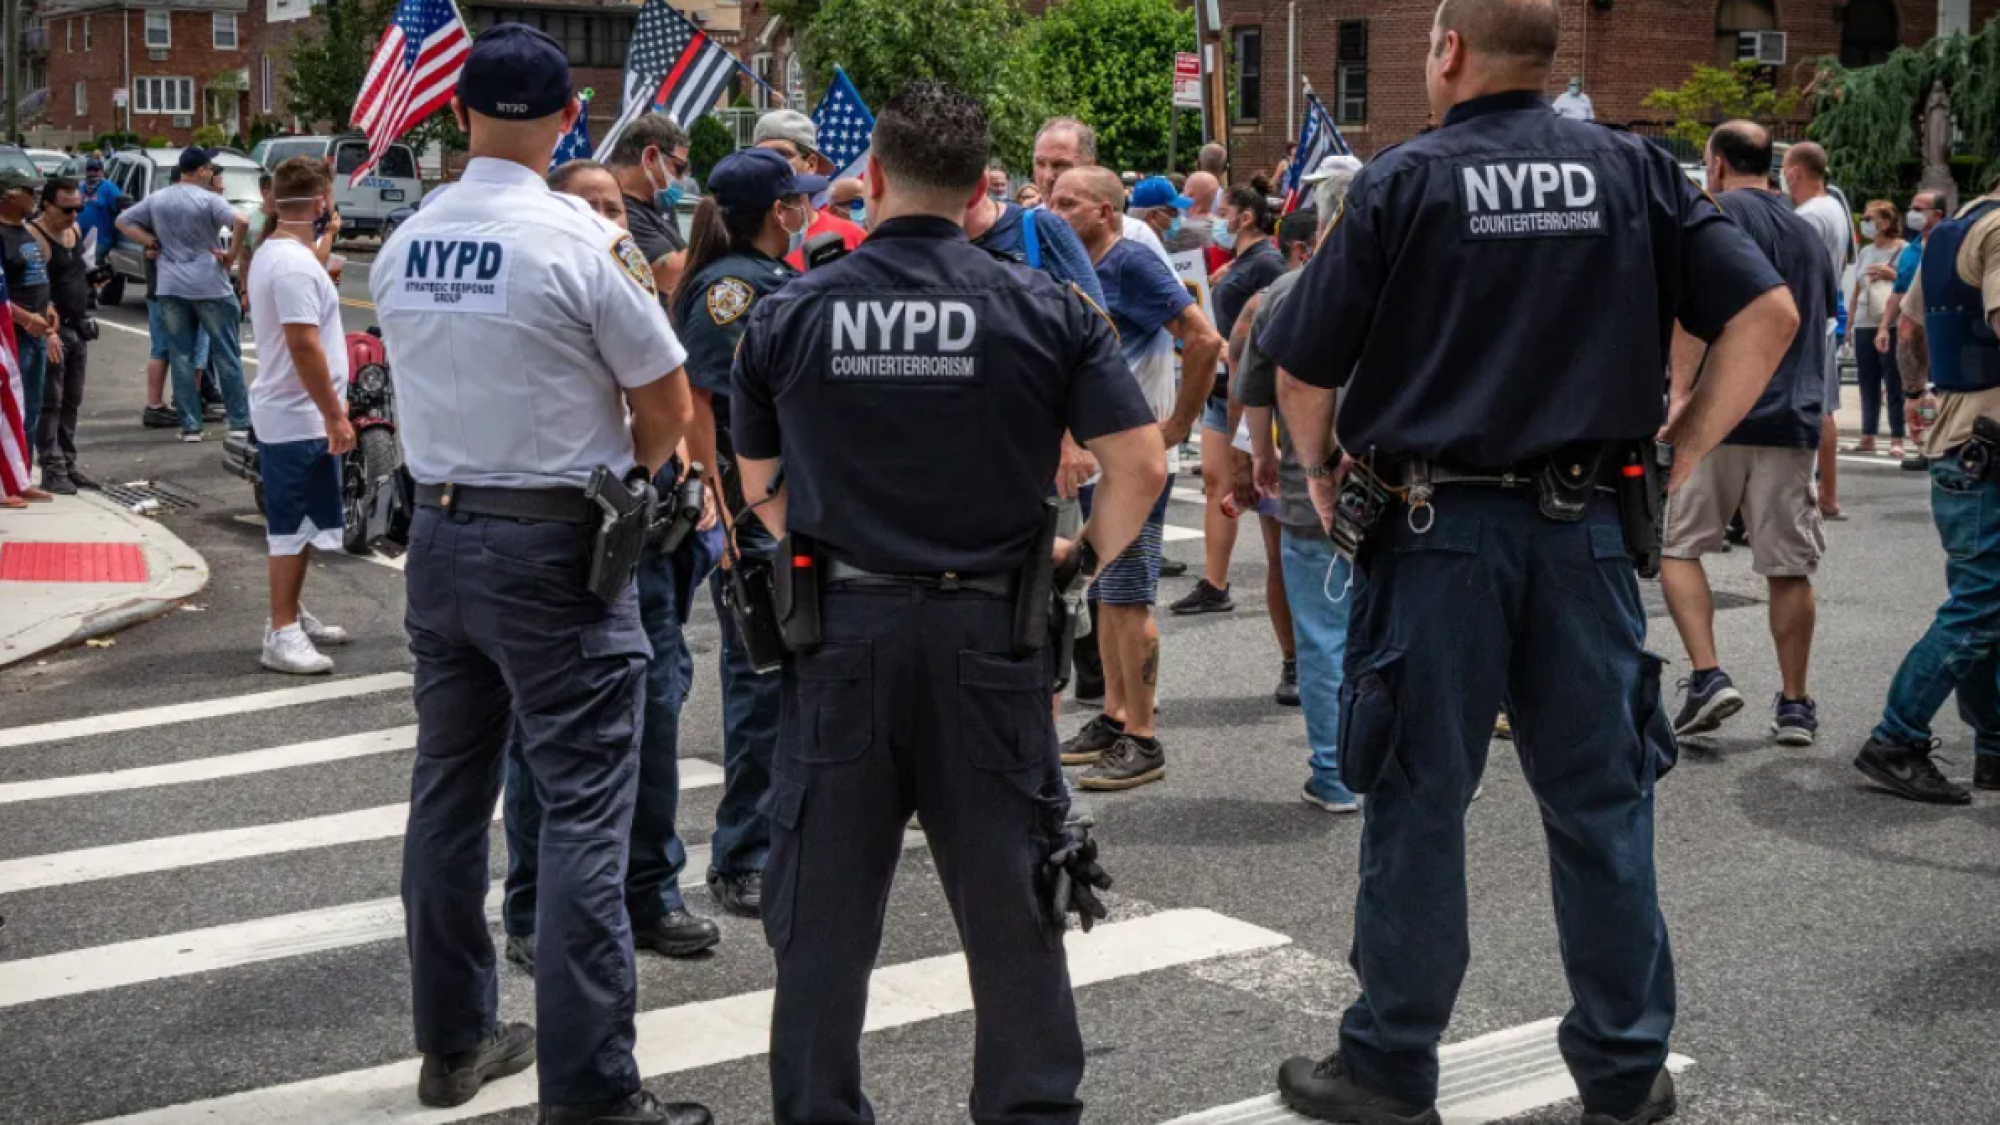 NYPD counterterrorism officers stand in front of a crowd